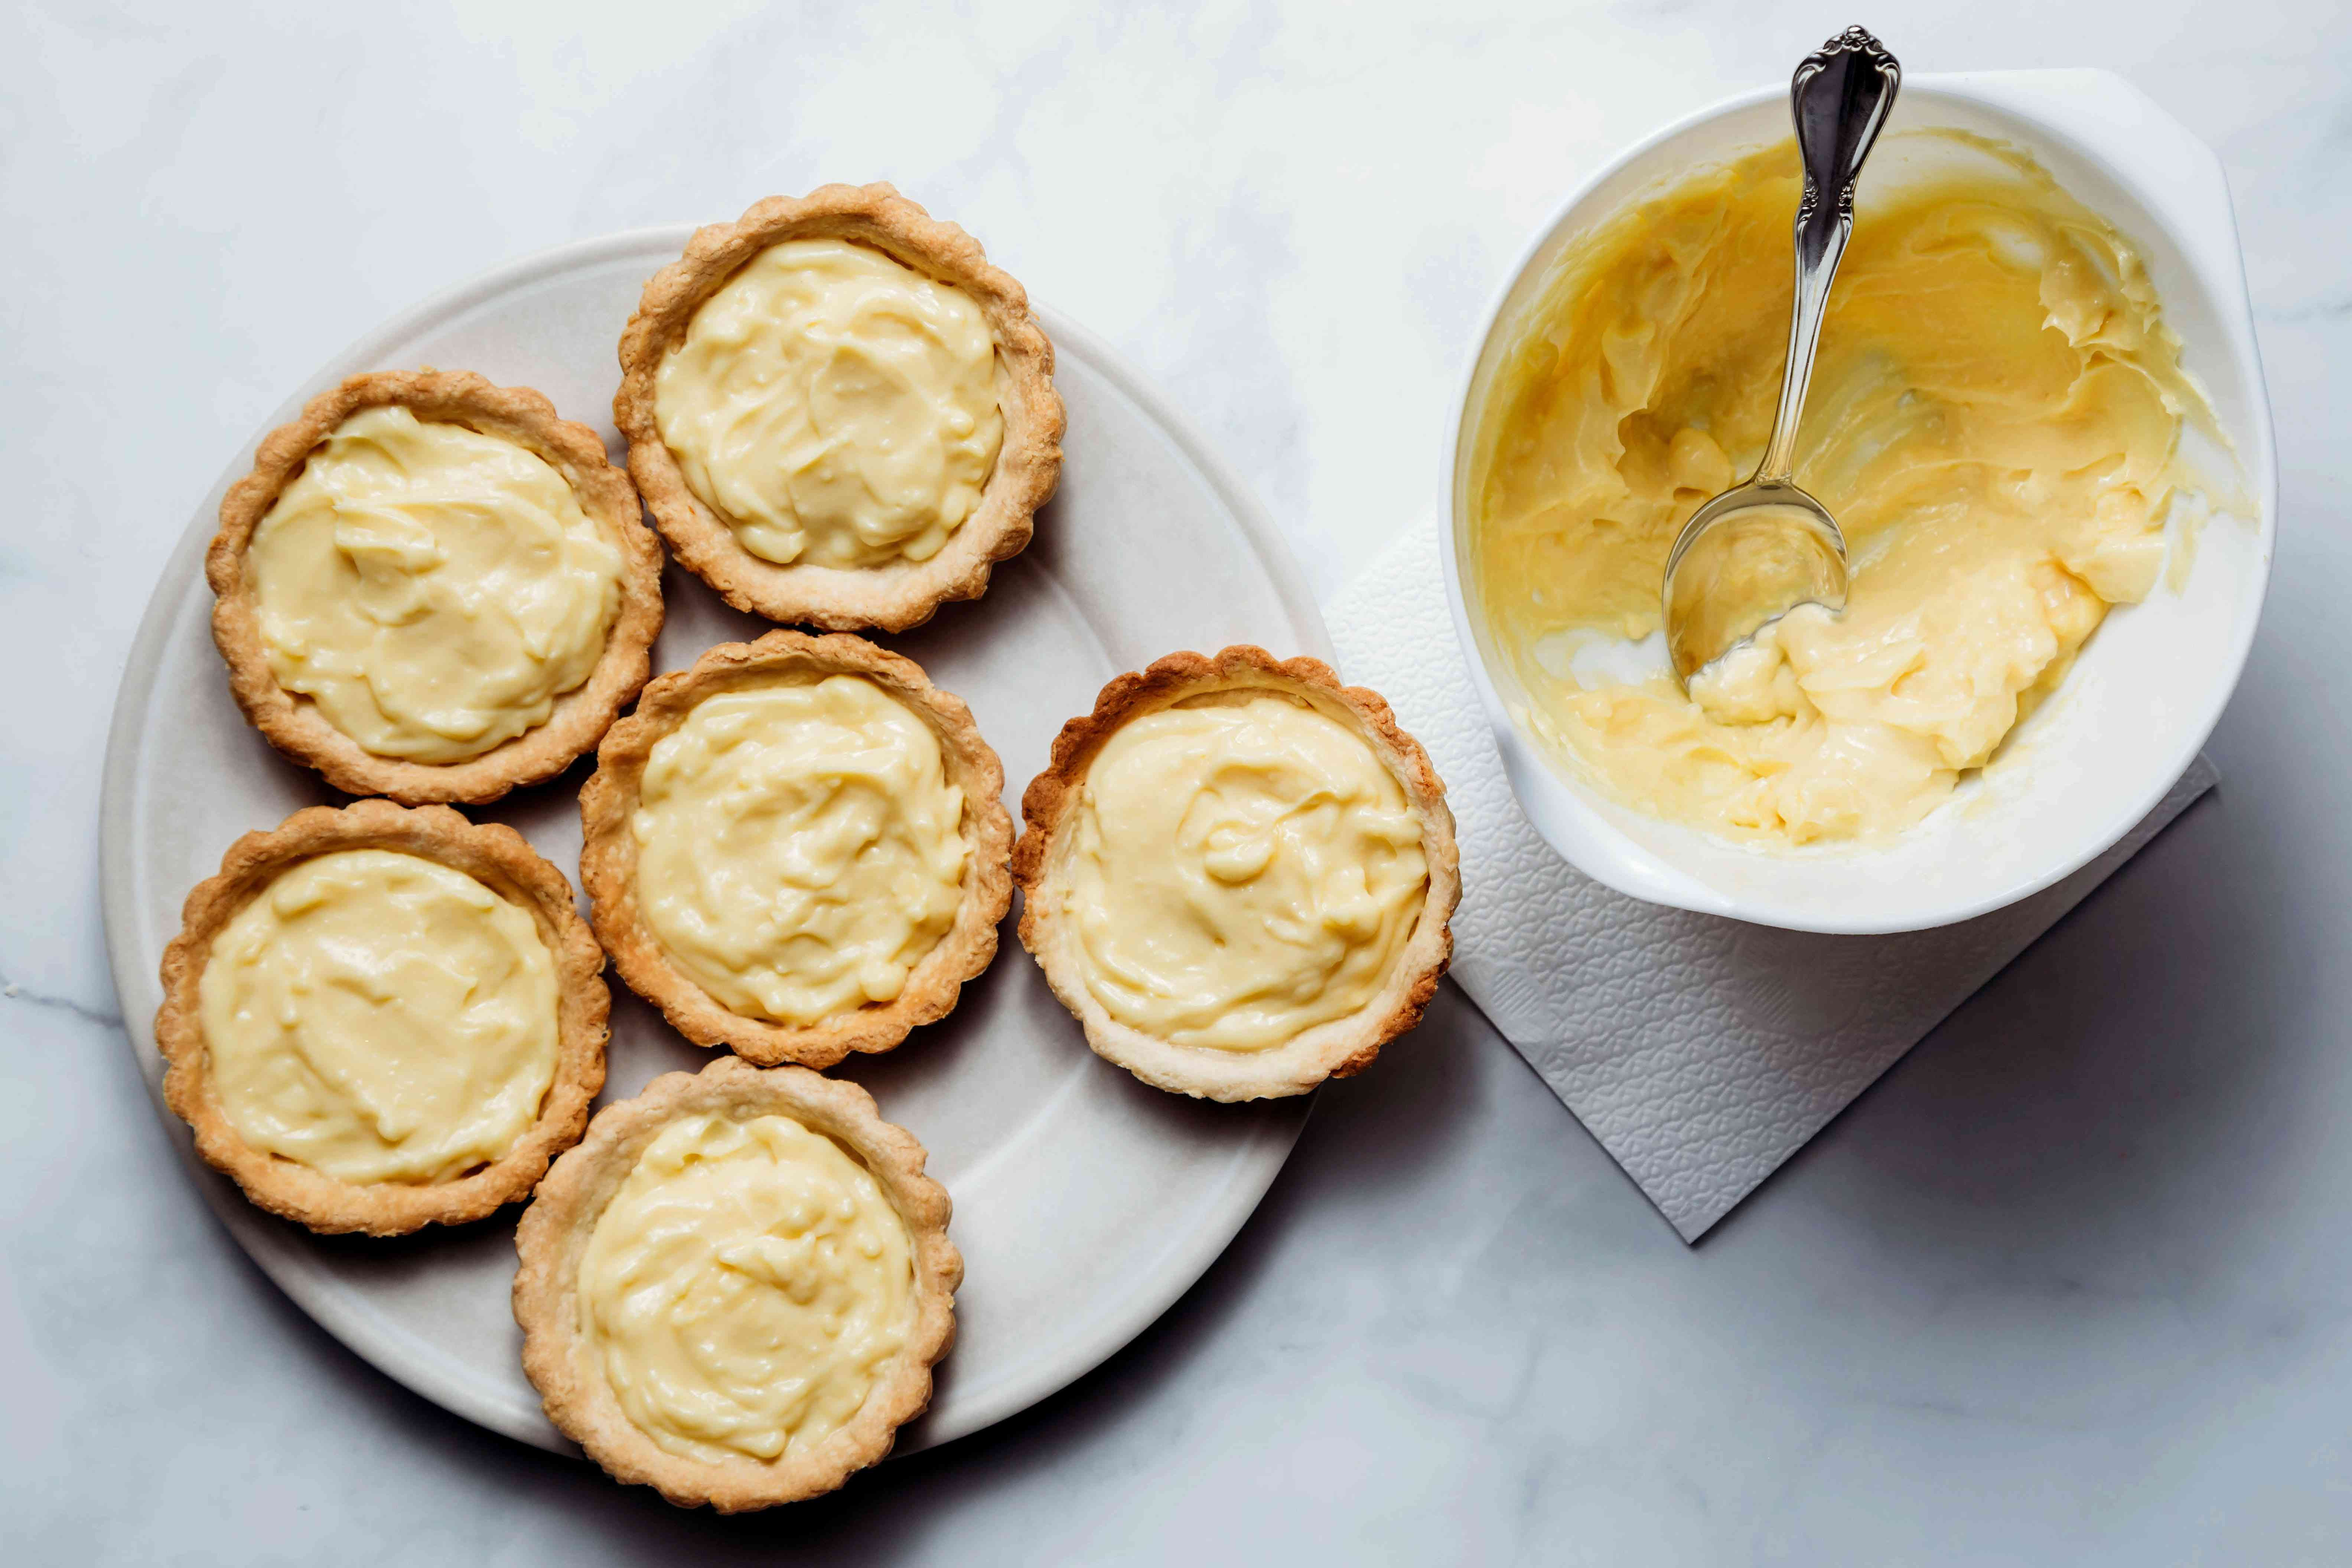 tart shells with pastry cream inside